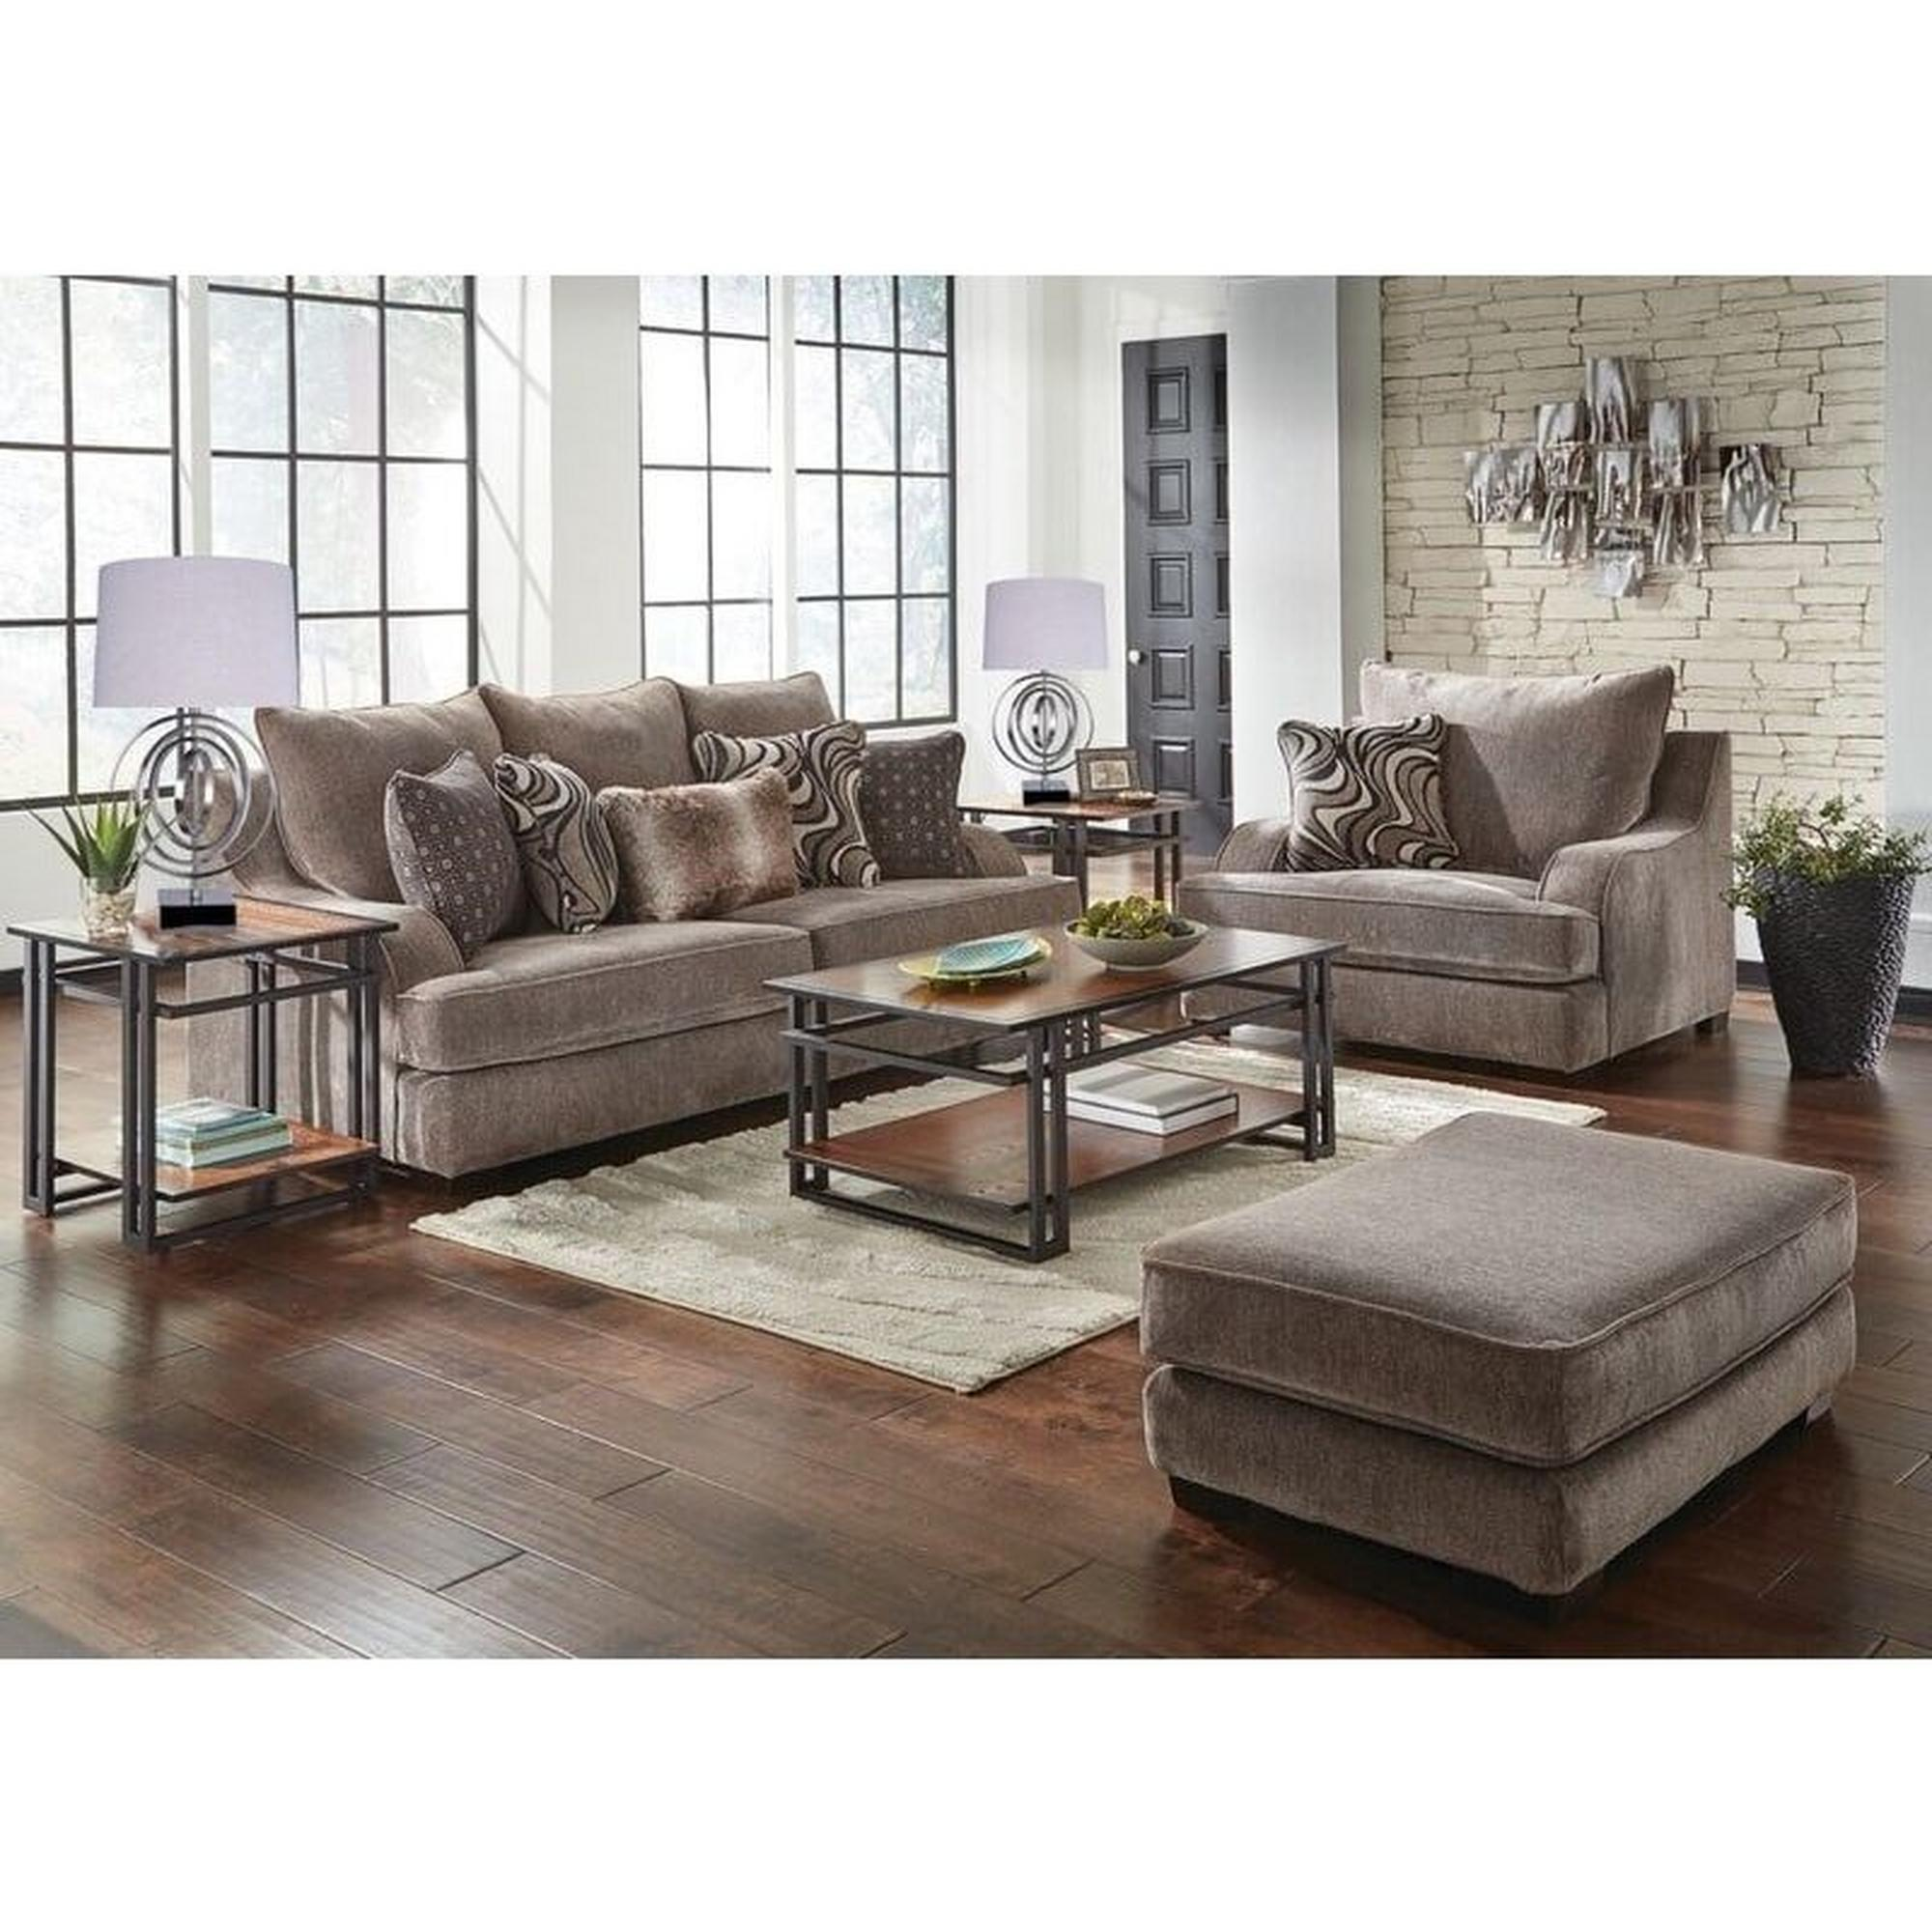 3 Piece Phantom Living Room Collection, Aarons Living Room Sets